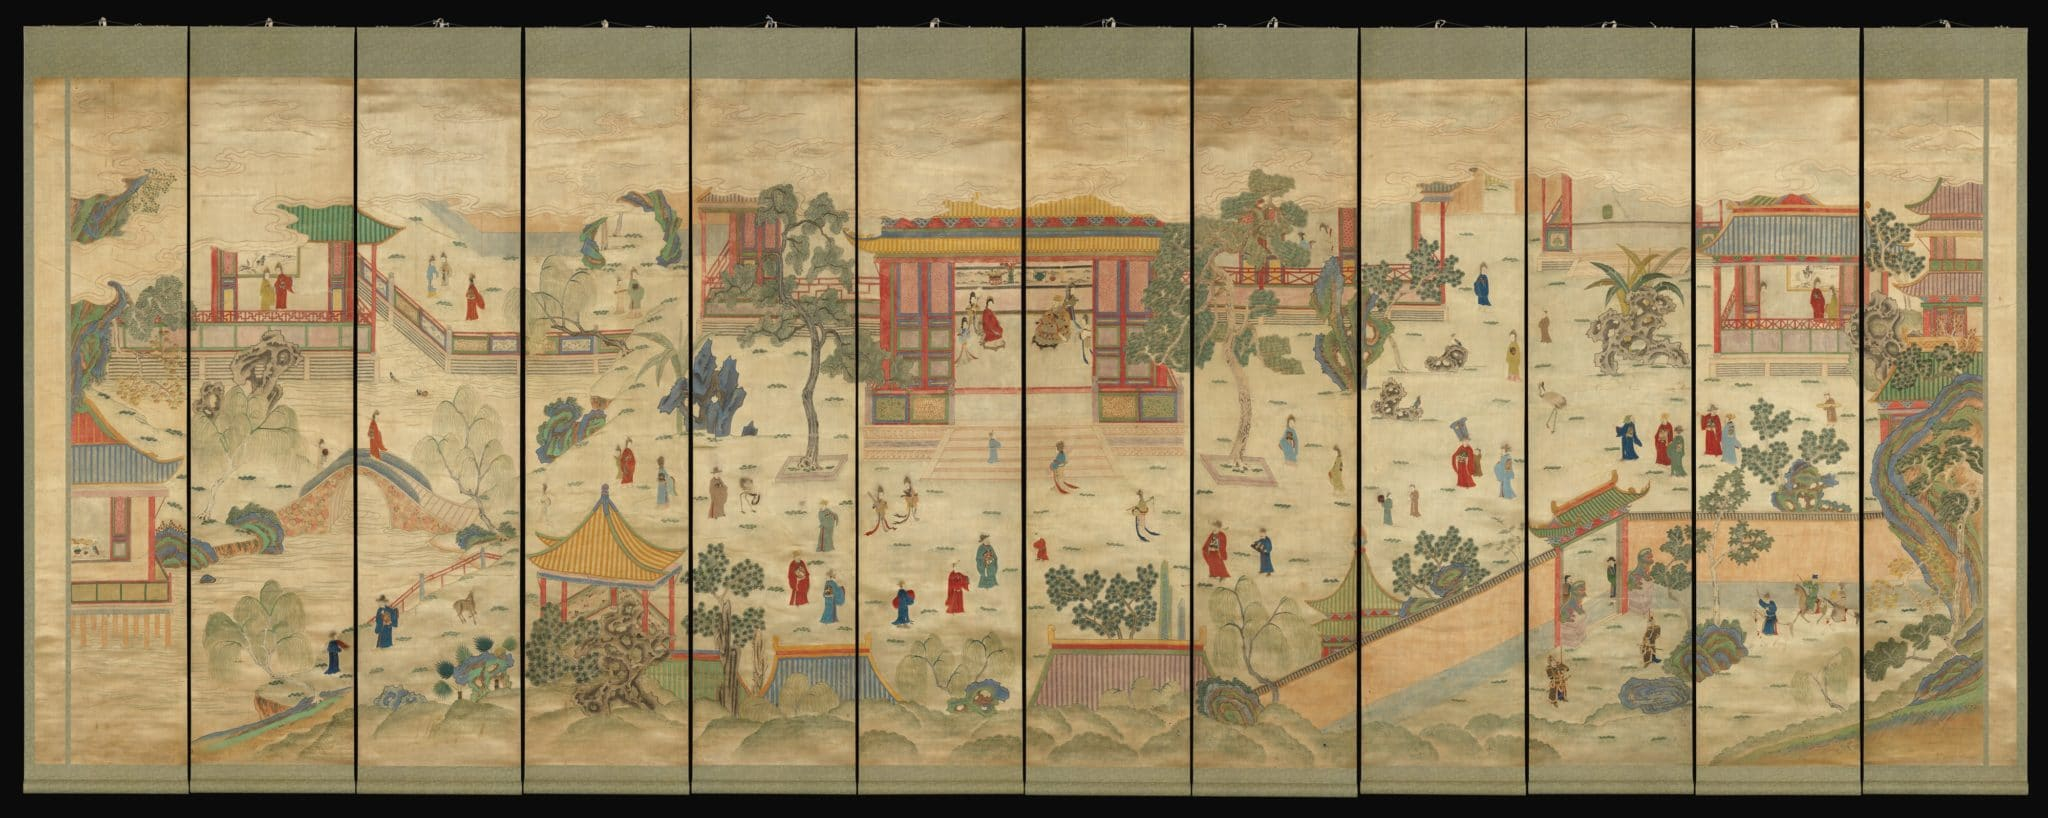 a traditional Chinese painting showing a scene featuring buildings, trees and people